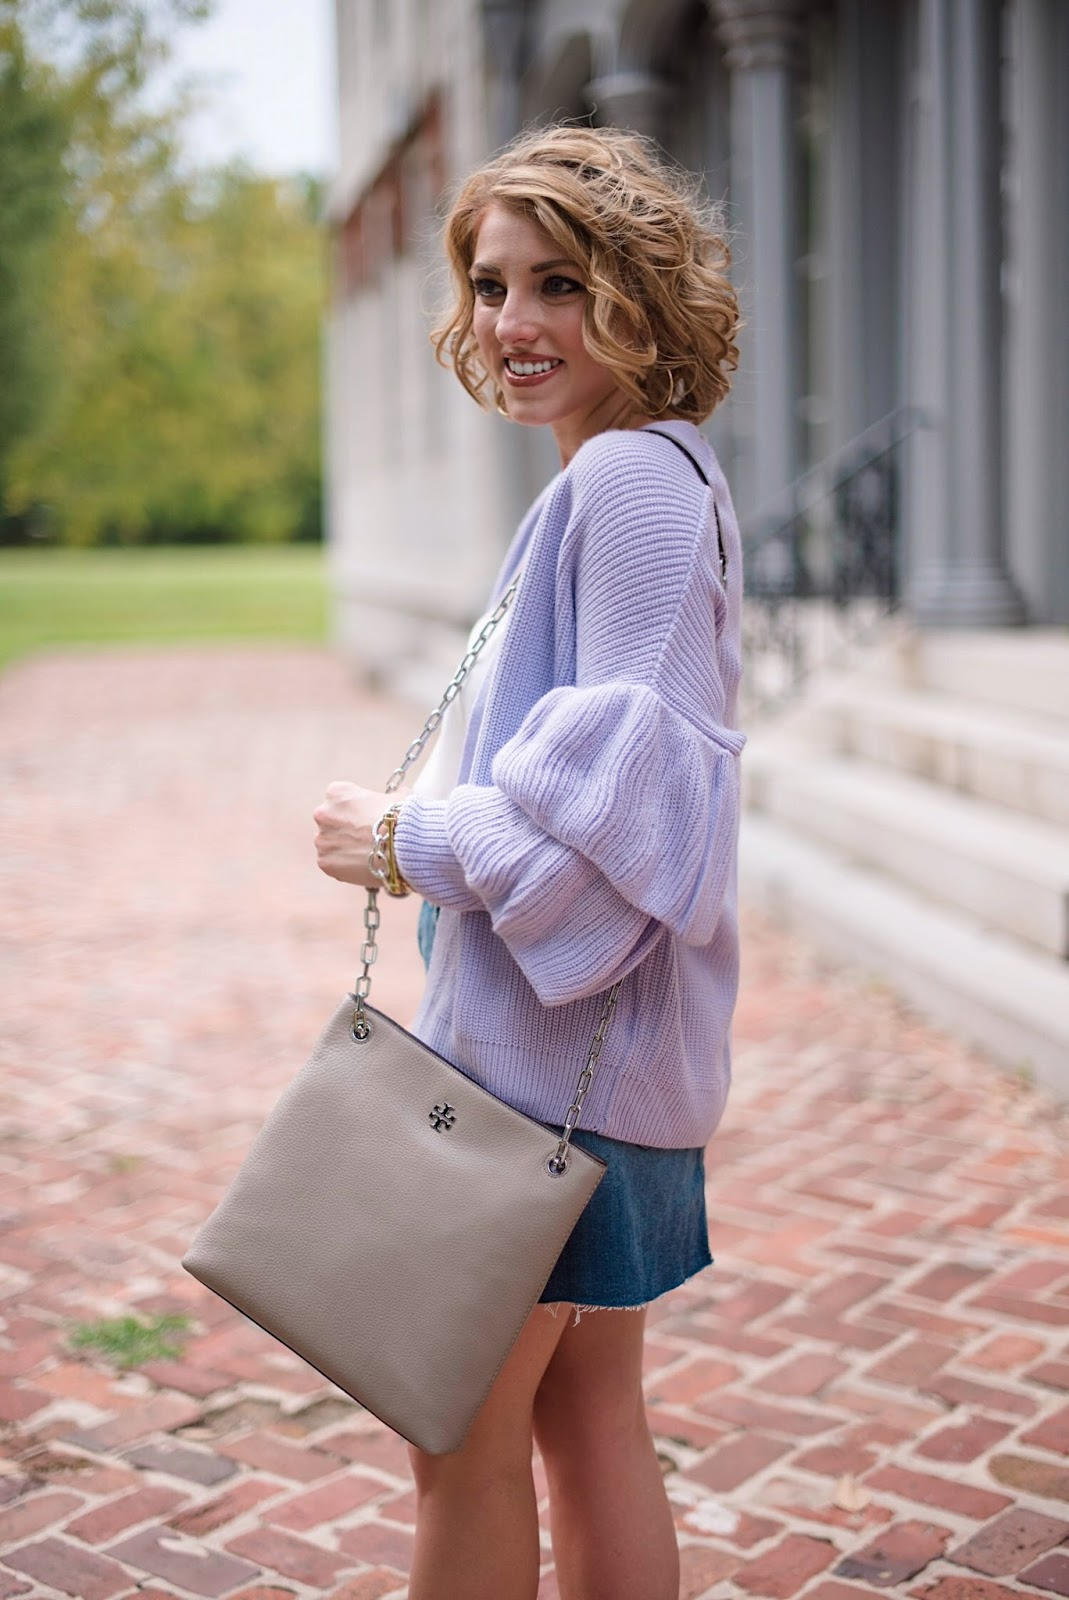 Ruffle Sleeve Cardigan - Something Delightful Blog (click through for the full post)